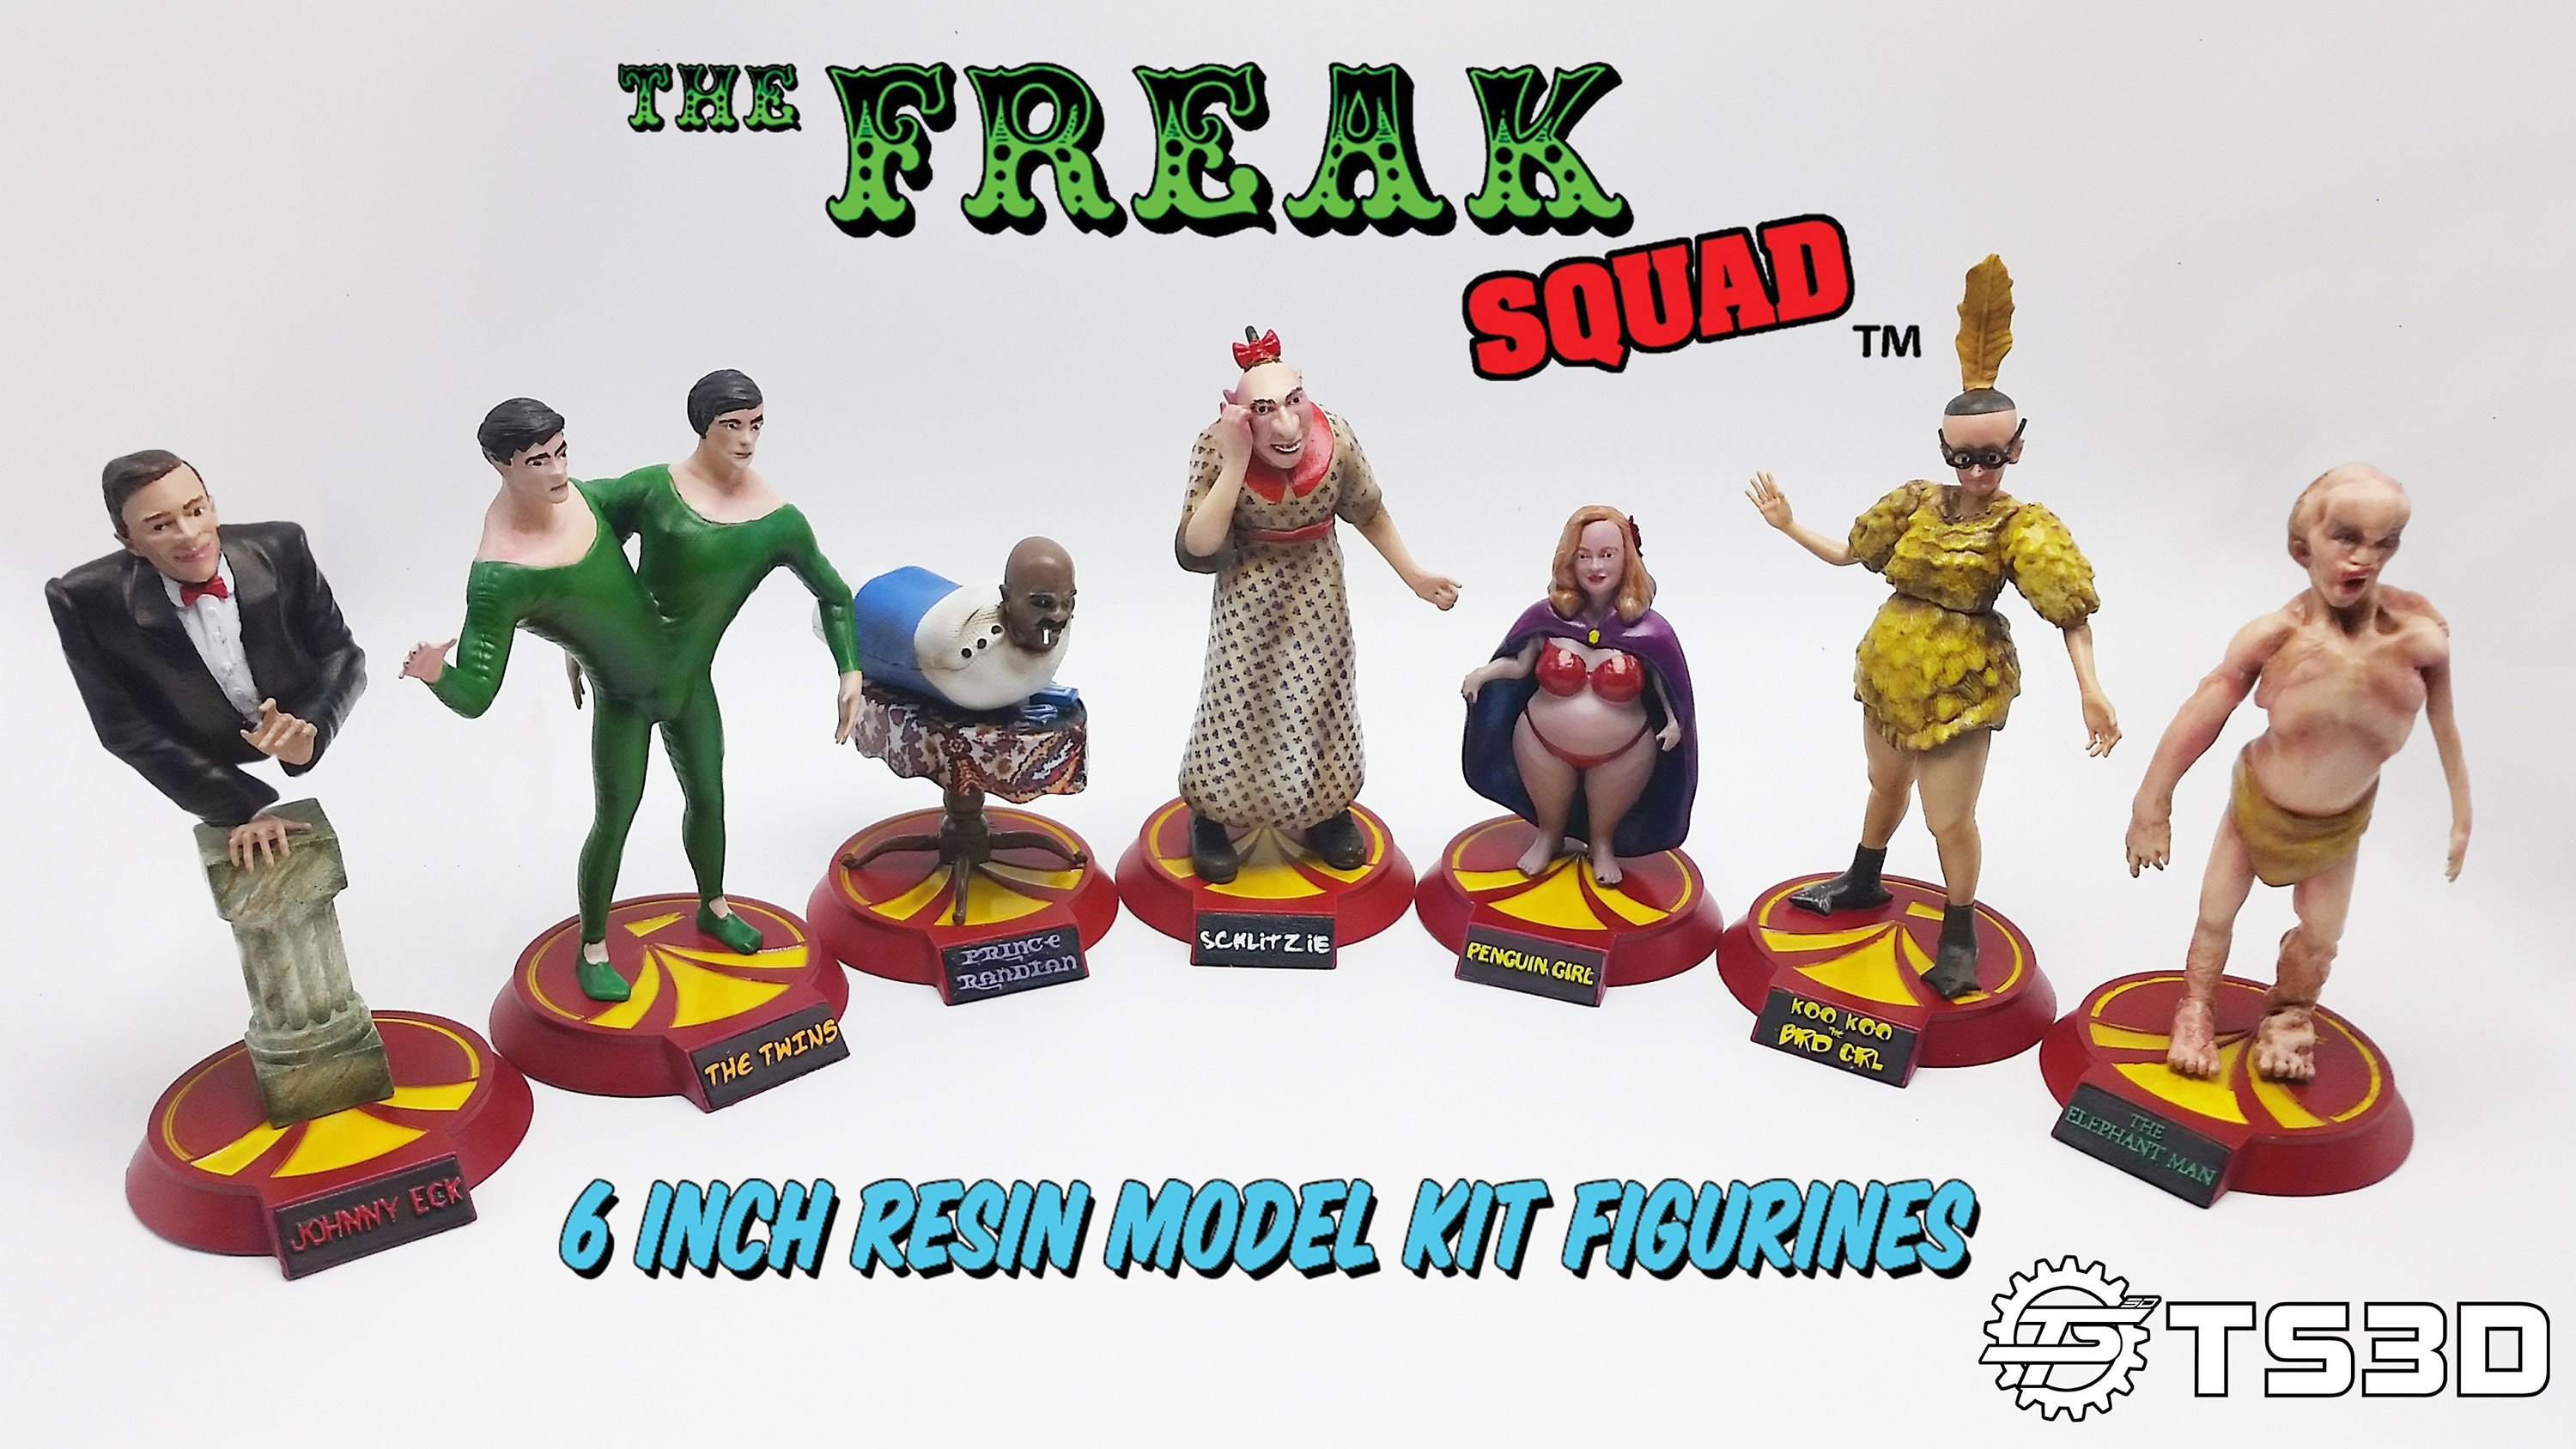 The Freak Squad - 6 inch Resin Model Kits - Complete set